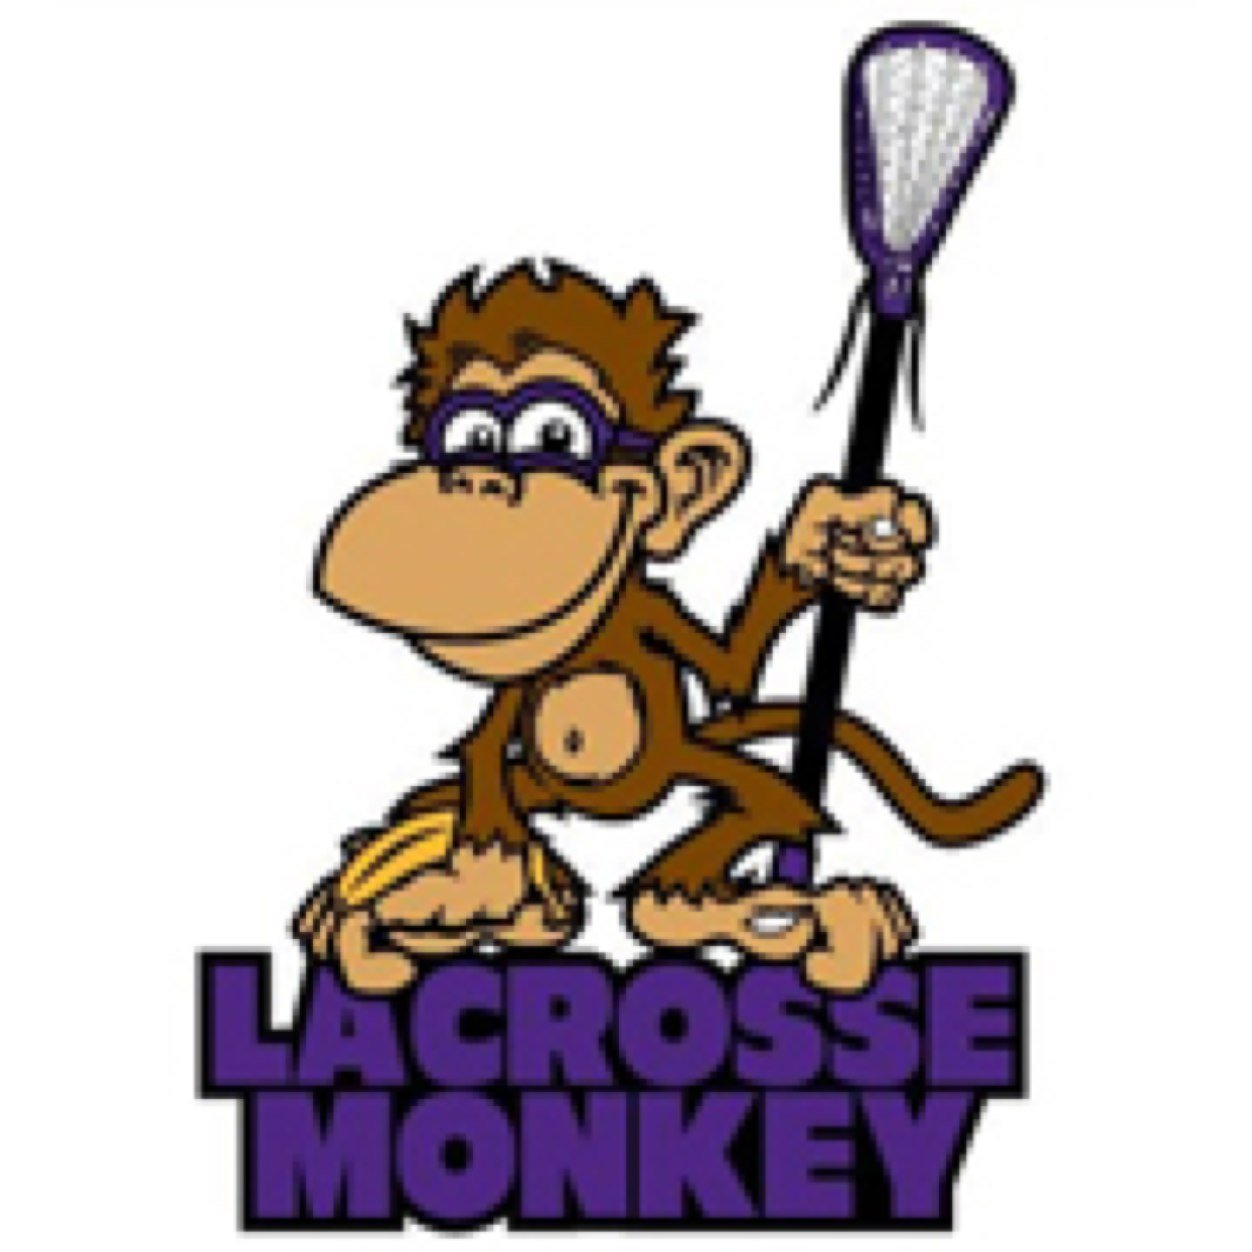 Lacrosse Monkey Lacrosse Monkey - Sideline Store - WE HAVE YOU COVERED FROM THE SIDELINE TO THE FIELD.